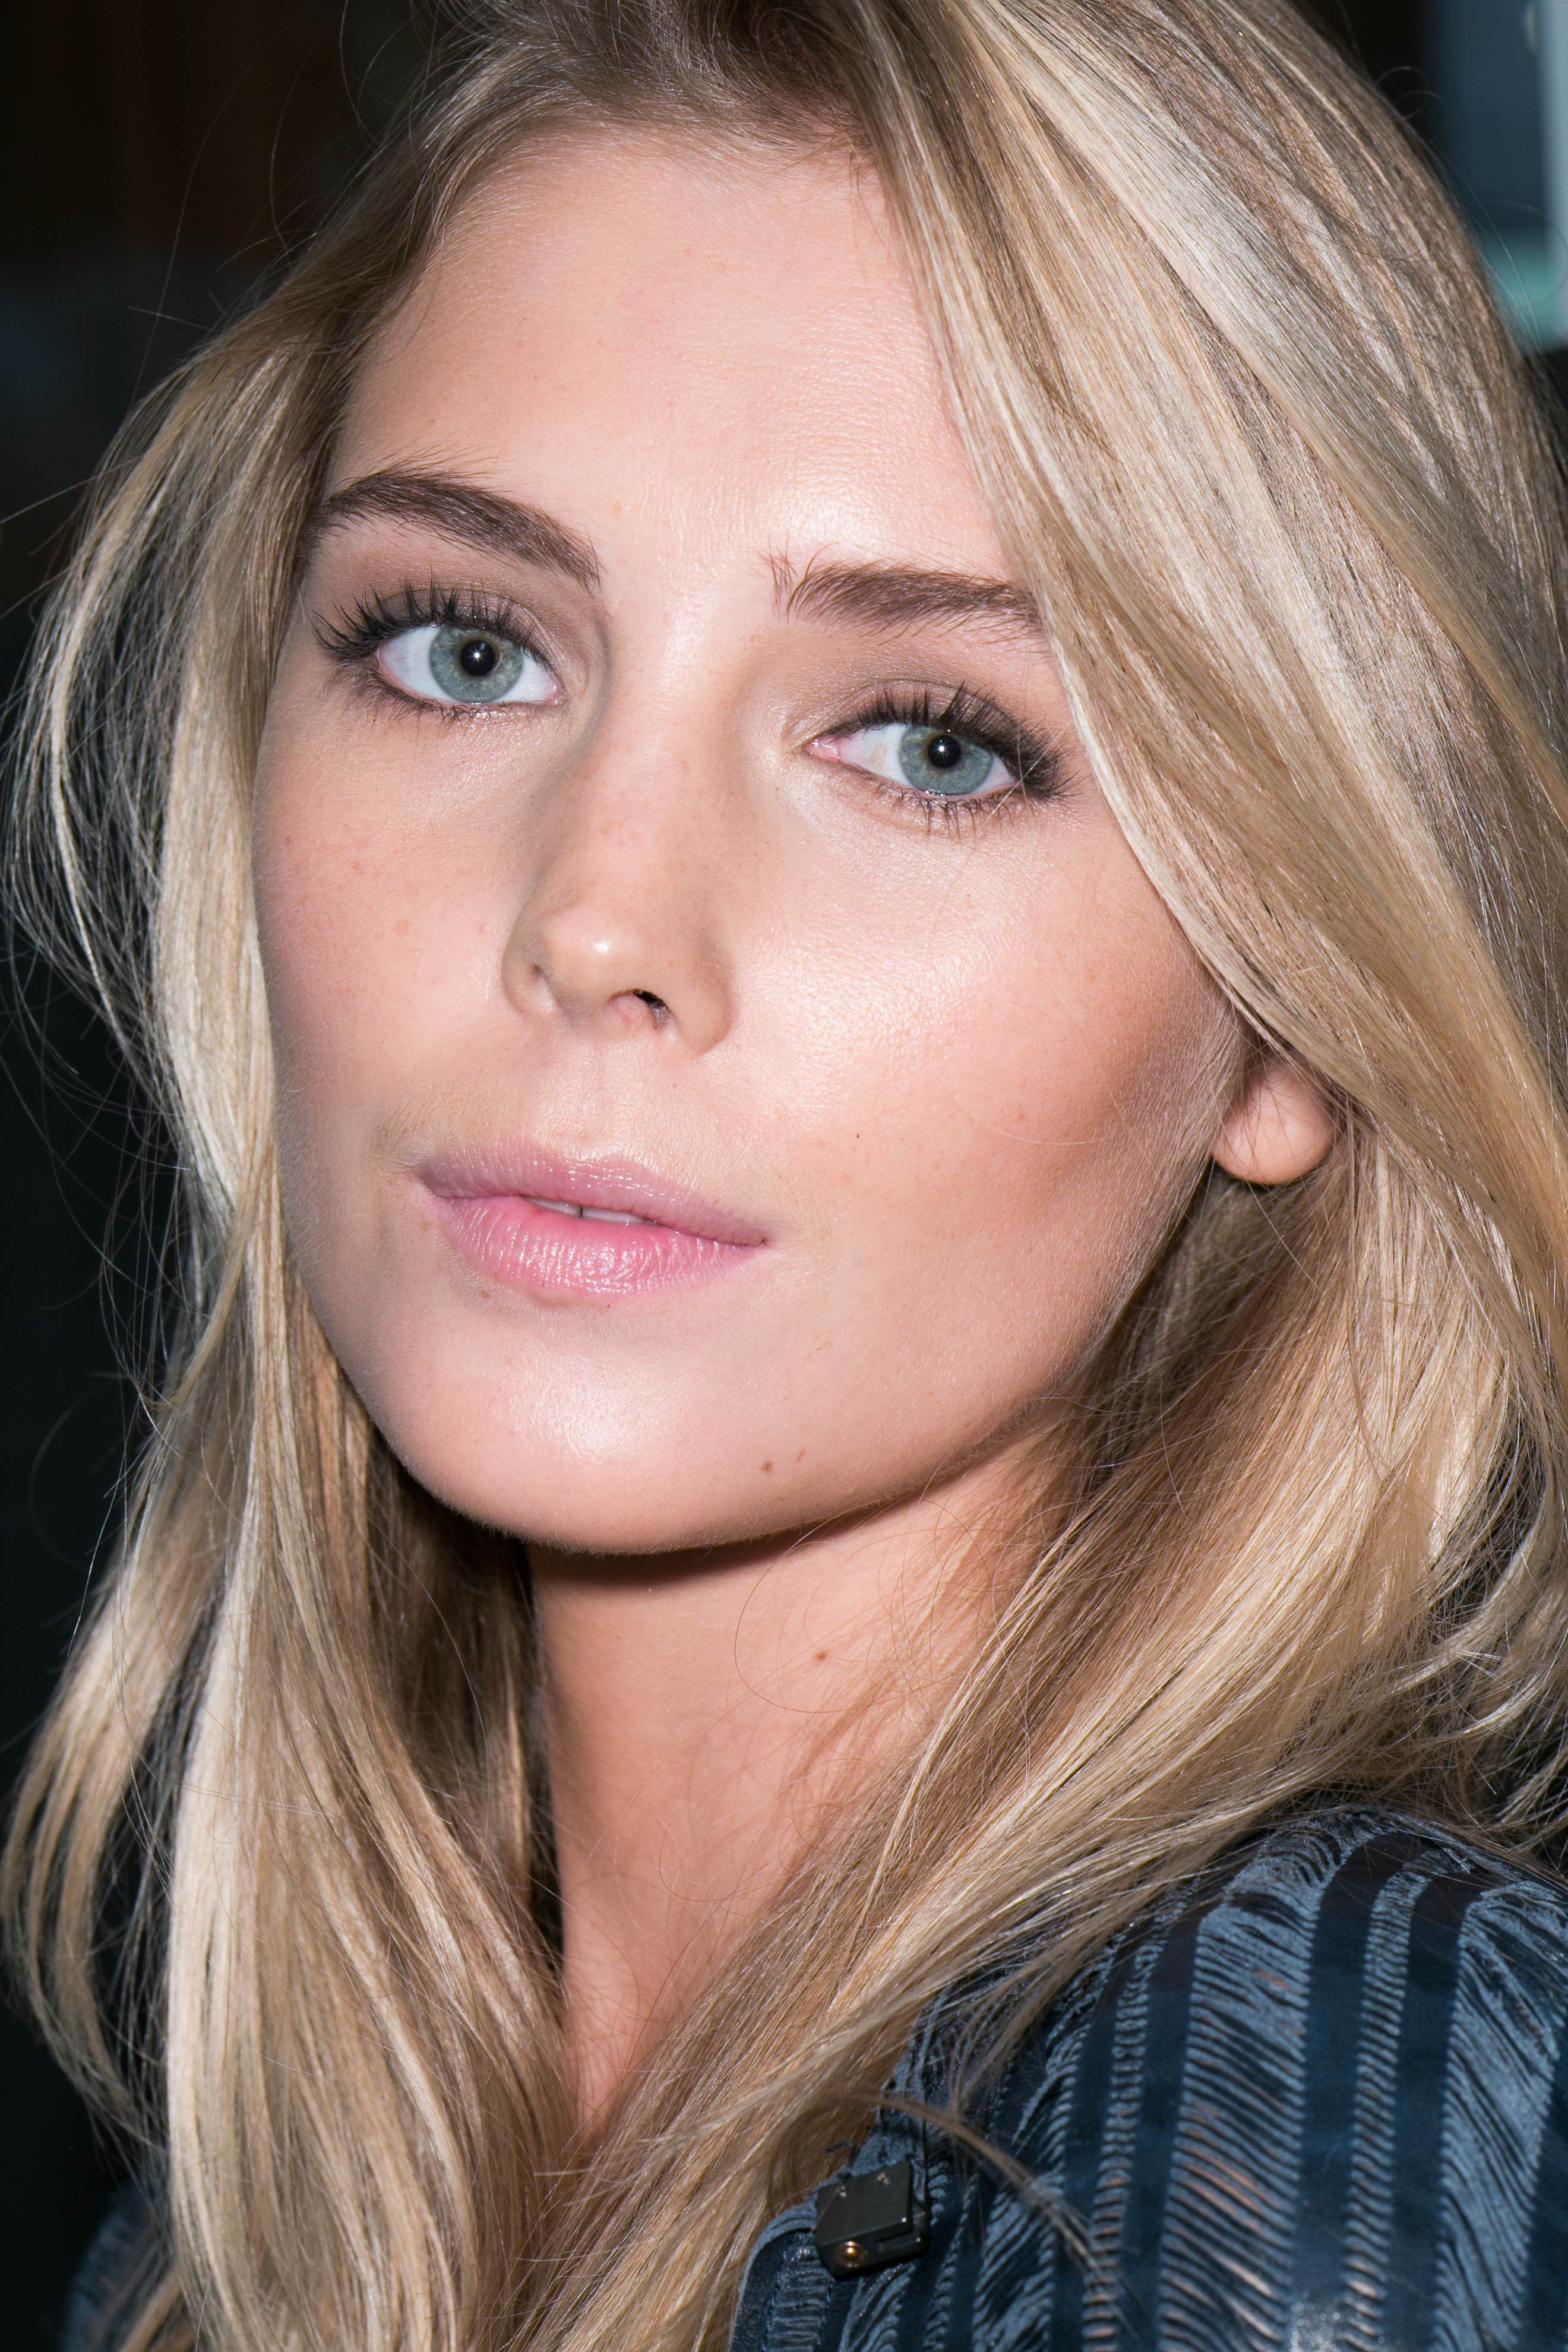 The Best Looks from Bobbi Brown for Spring. Make up